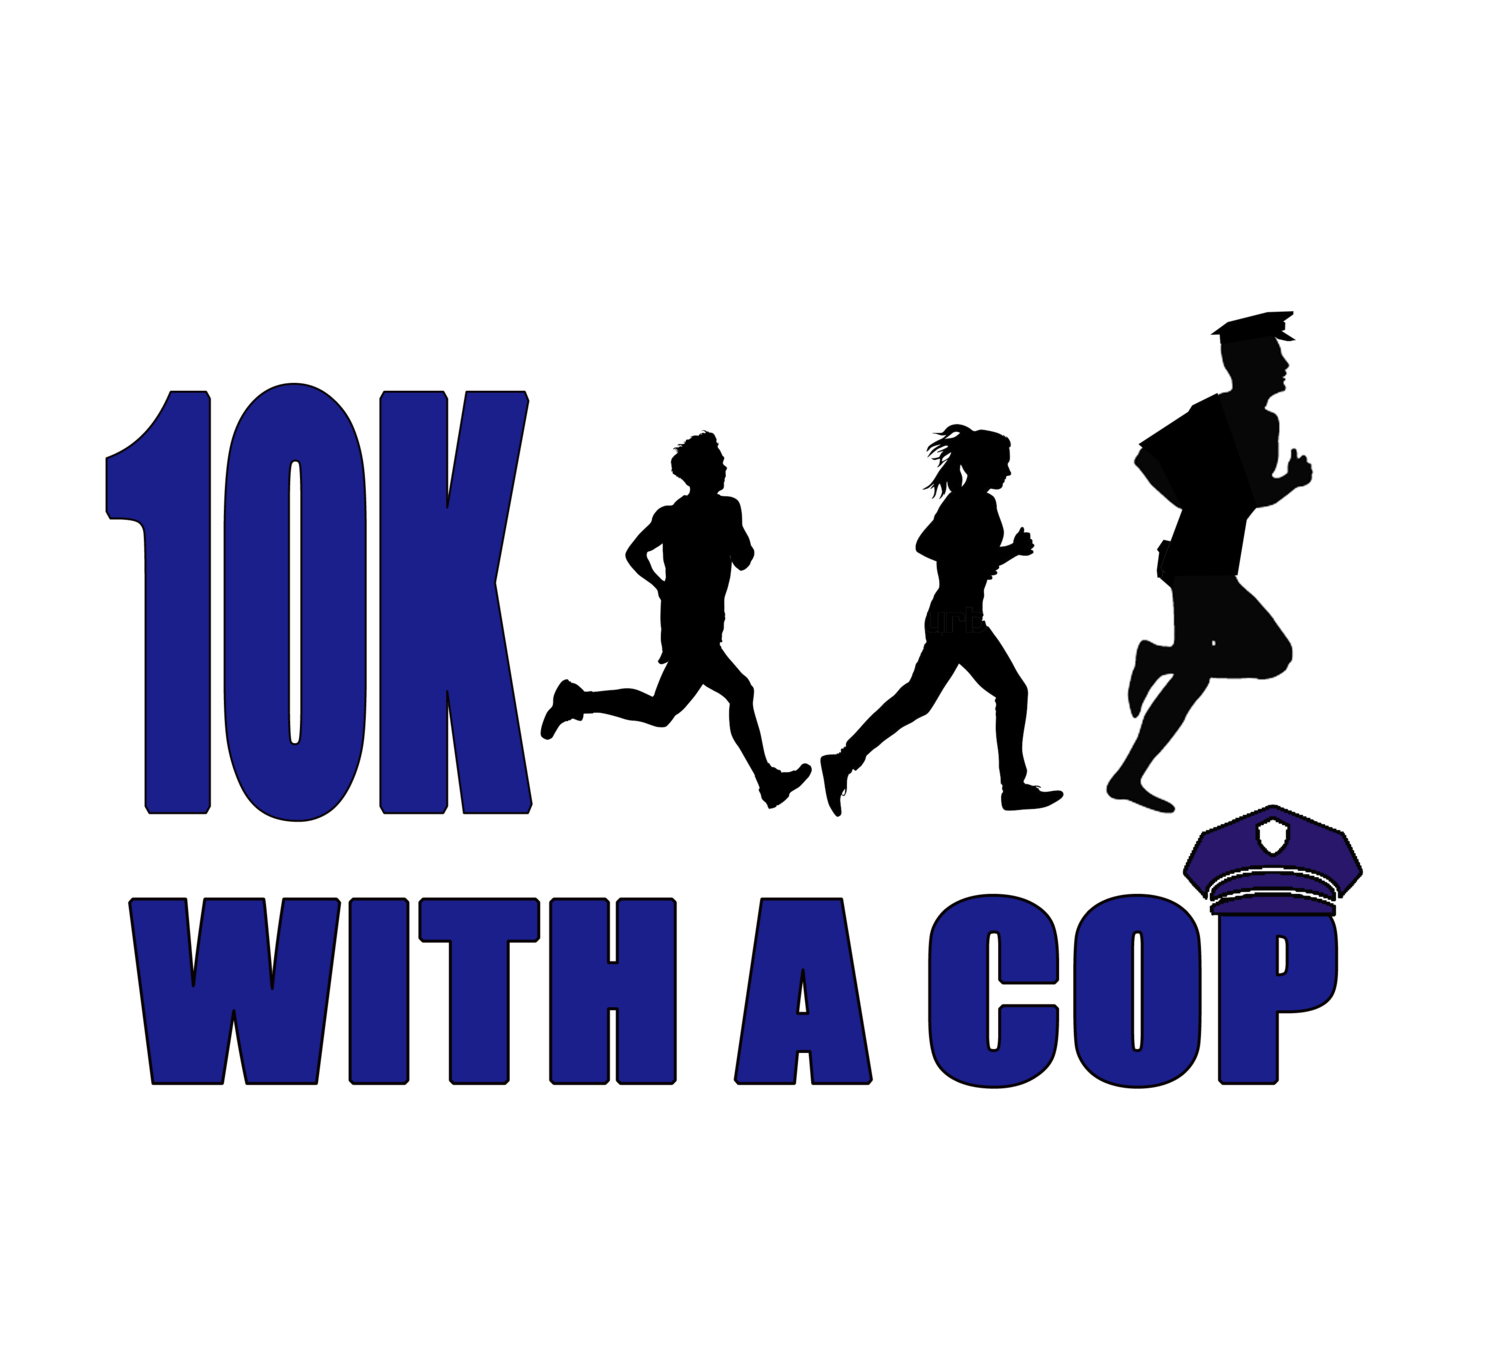 10K WITH A COP